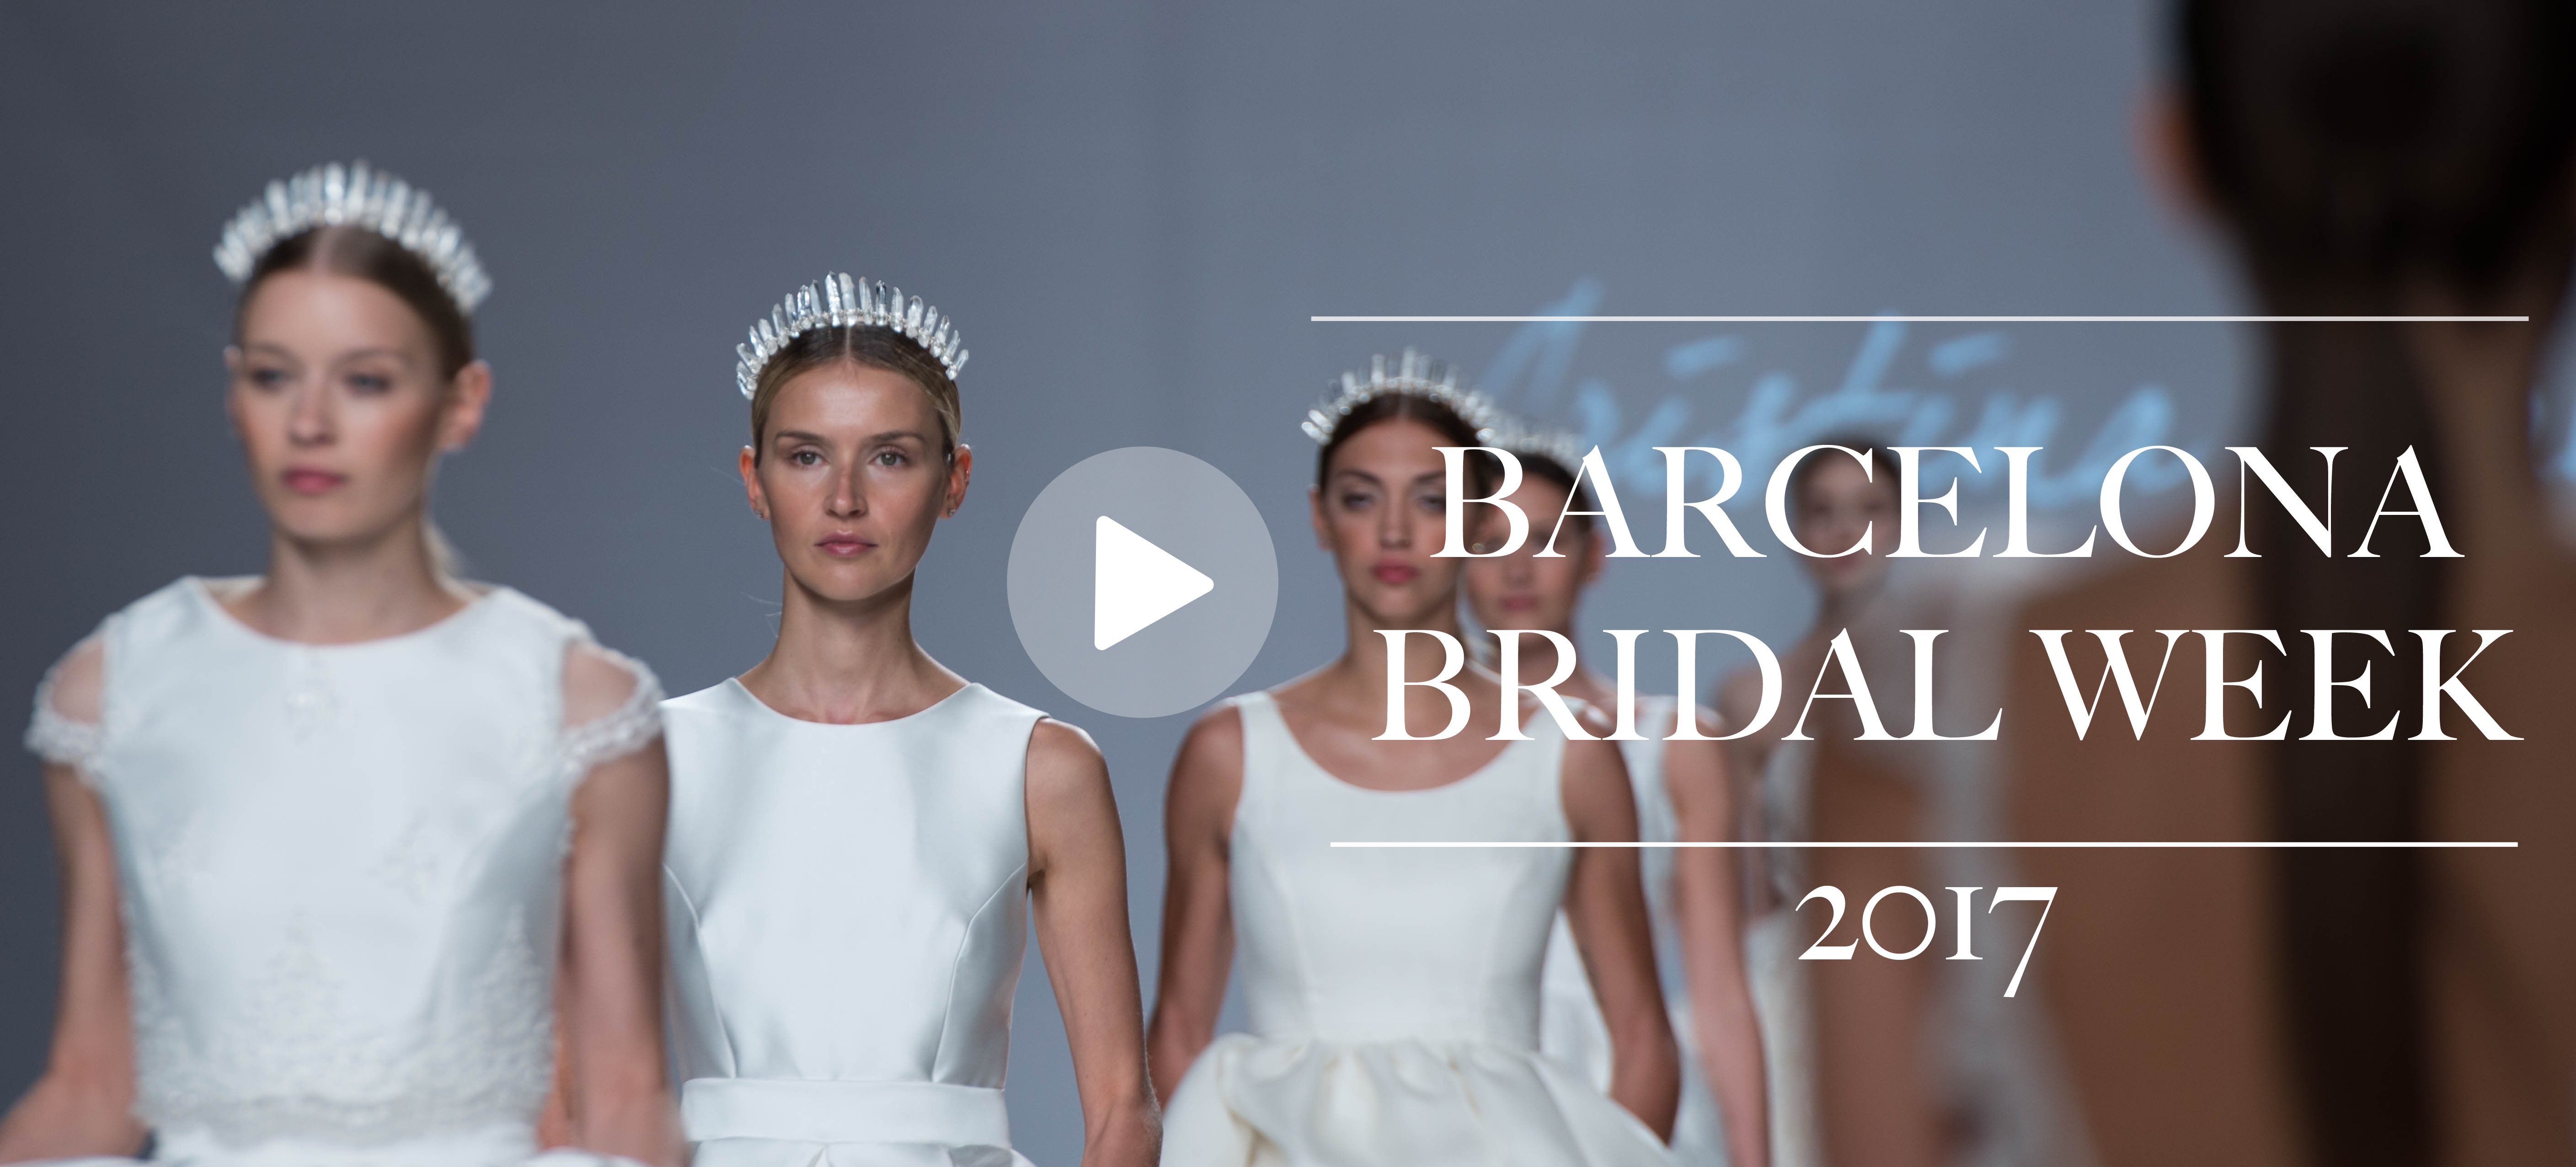 Desfile Barcelona Bridal Week 2017